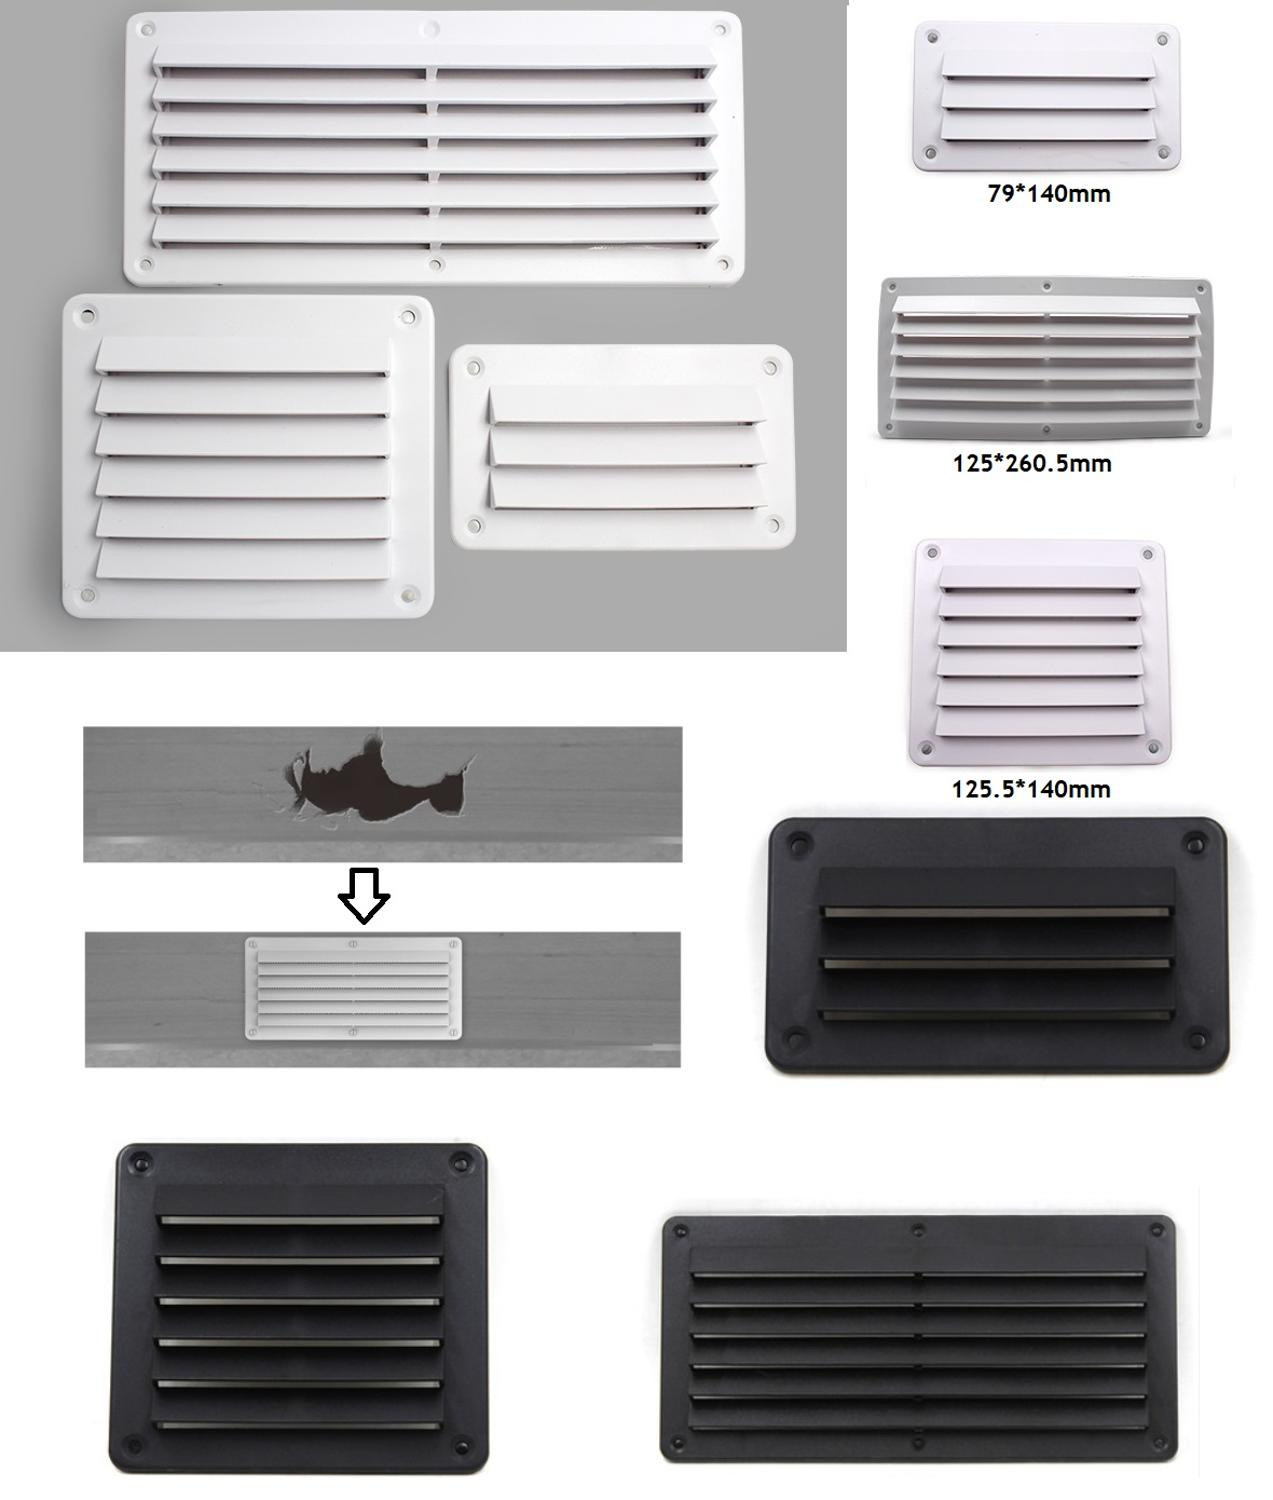 Premintehdw Plastic Air Vent Ventilator Grille Cover Ventilation RV Wall  mount